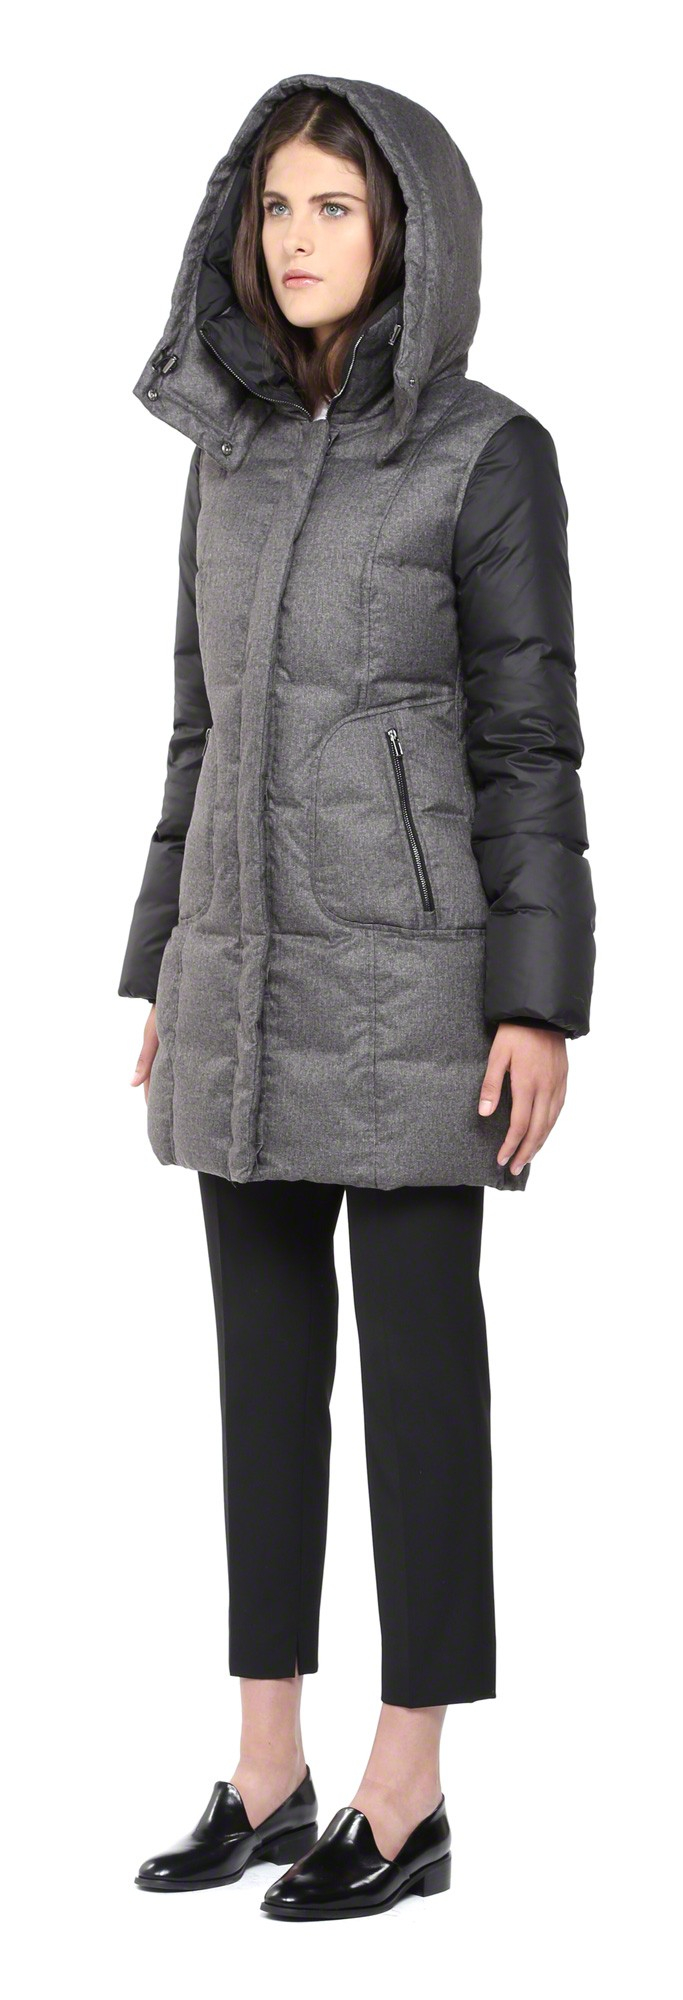 Soia & kyo Alois-Sp Grey Down Coat With Hood in Gray | Lyst